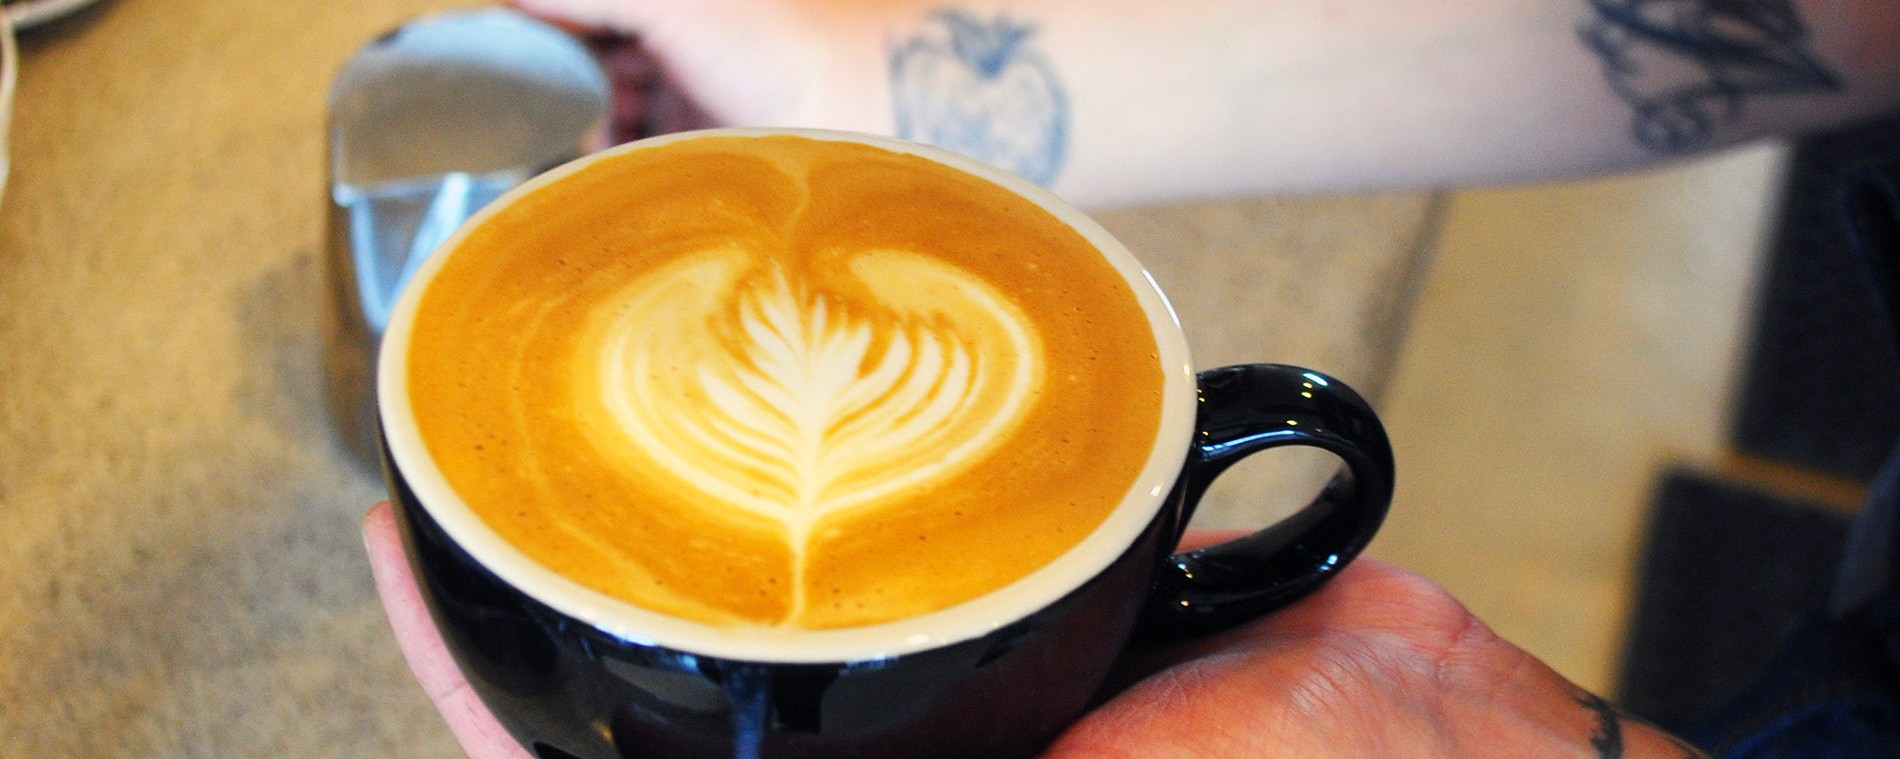 Espresso Is the Drug of Choice for Straight Edge Punks in San Diego